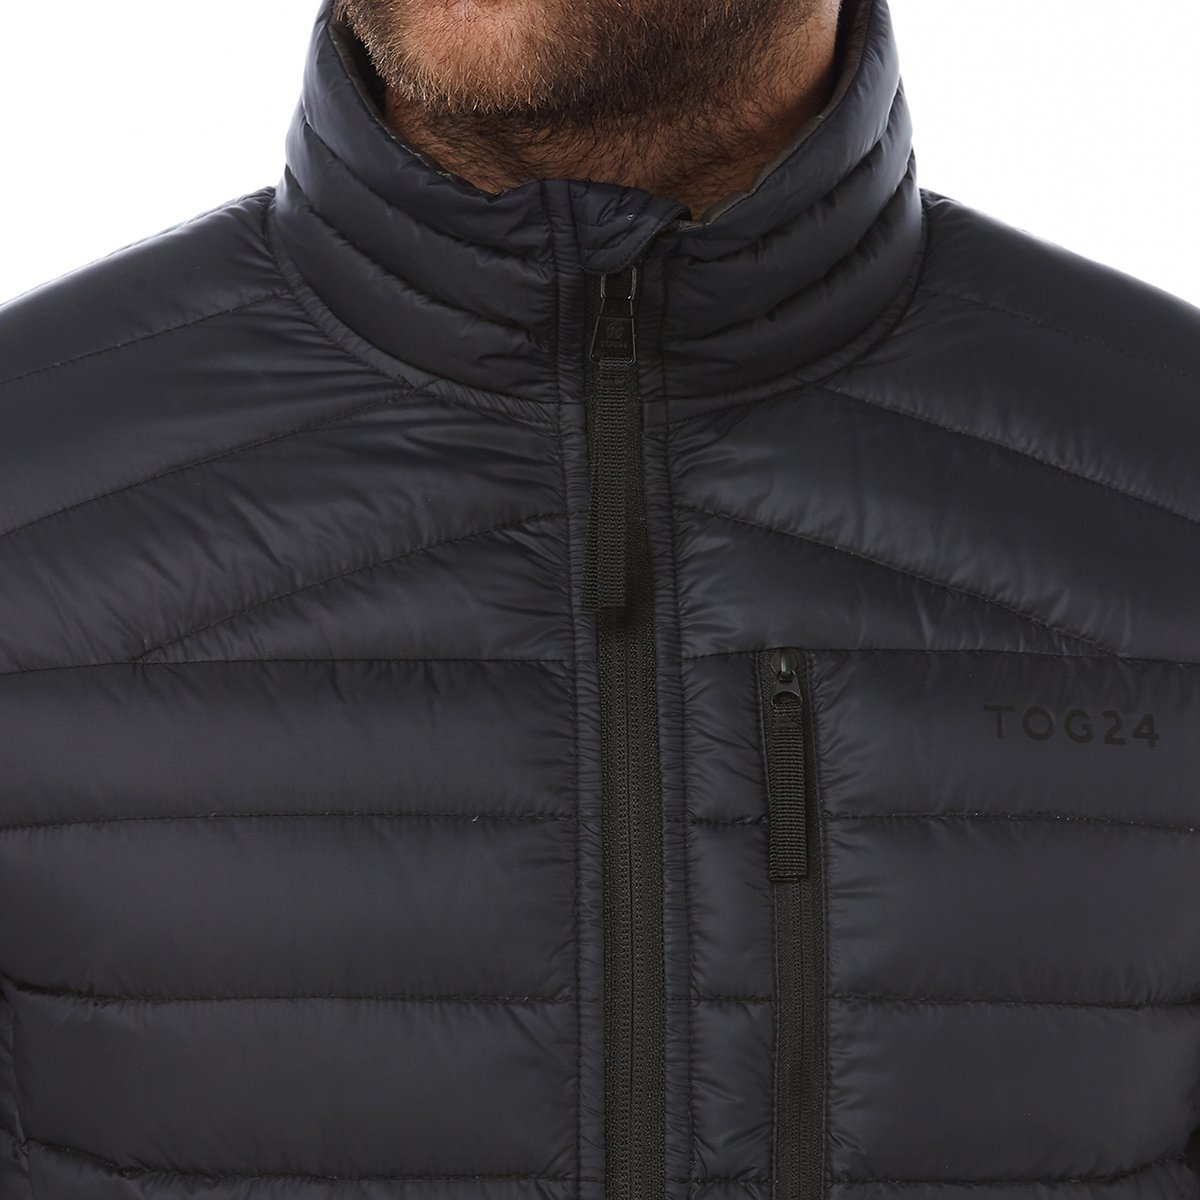 36ad3386a36bb TOG 24 Prime Mens Down Jacket: Amazon.co.uk: Clothing